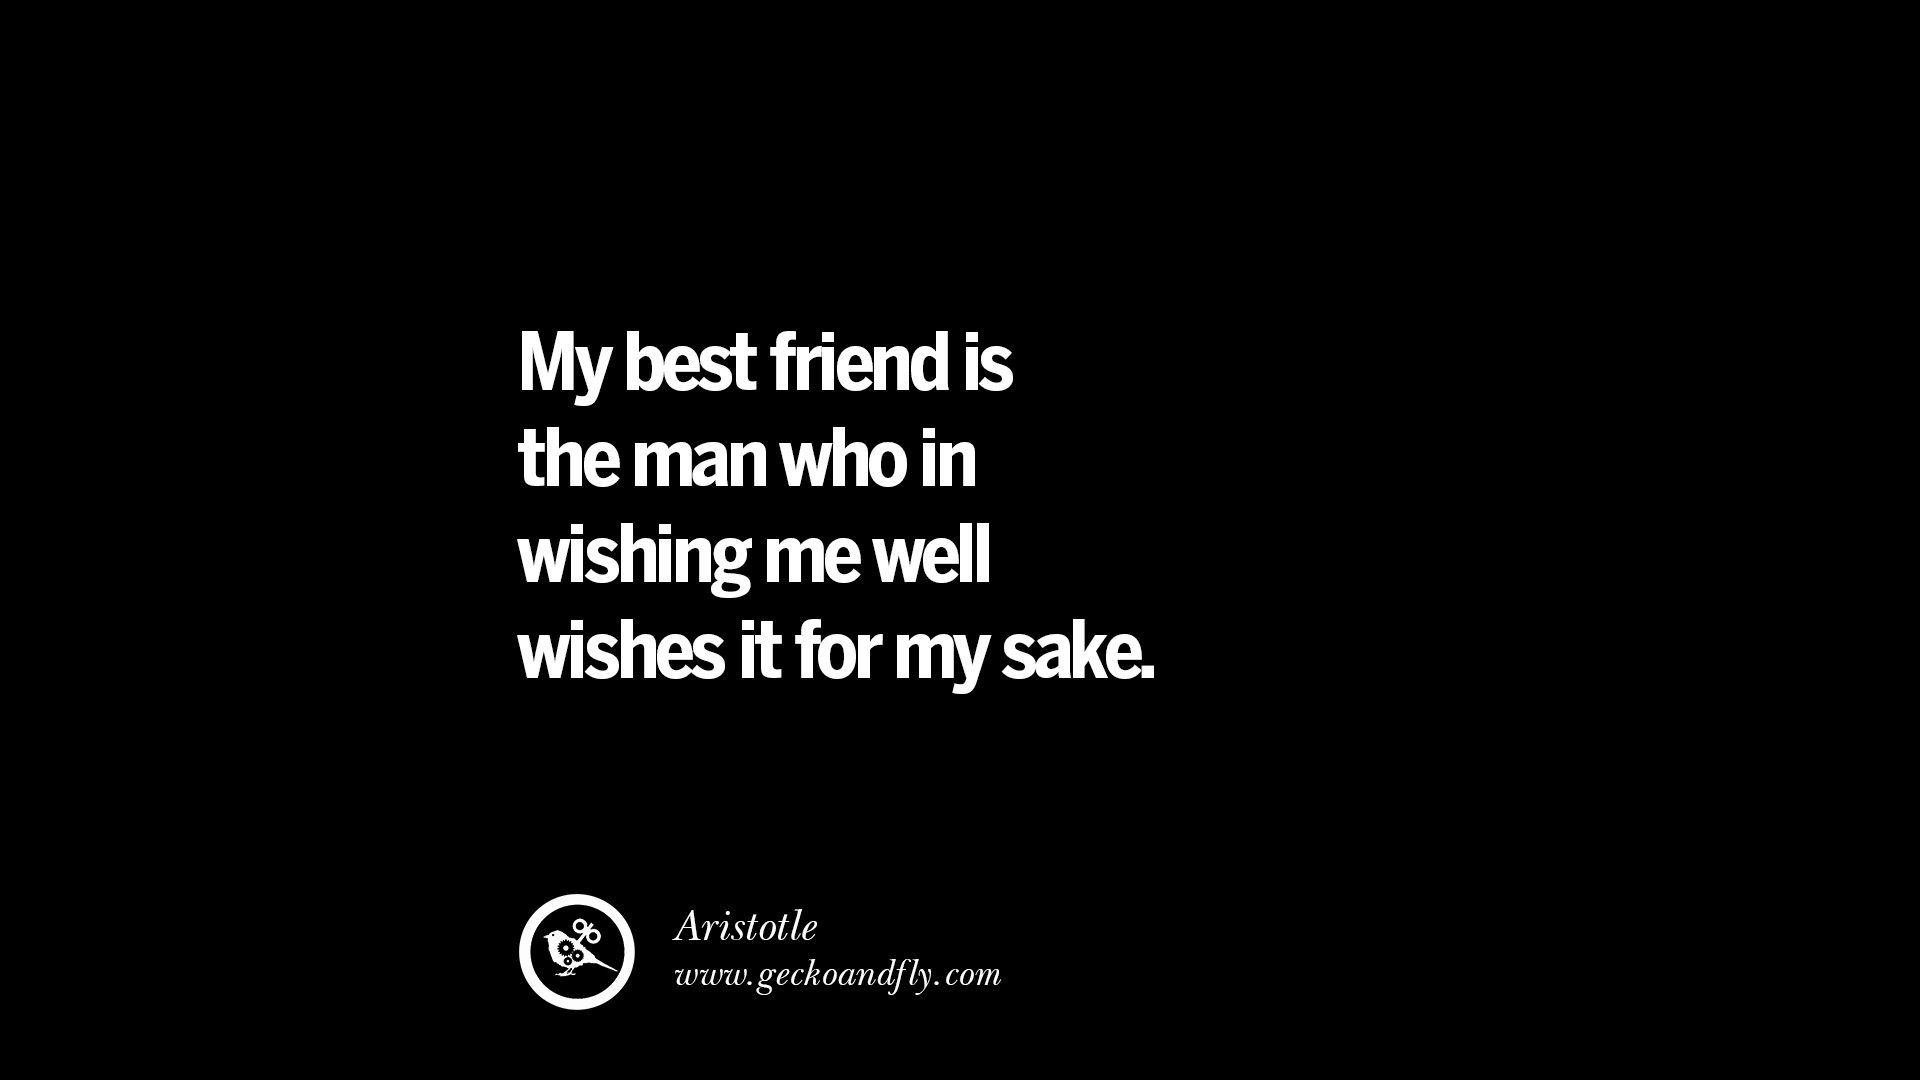 Funny Quote About Friendship 20 Amazing Quotes About Friendship Love And Friends  Geckoandfly 2018